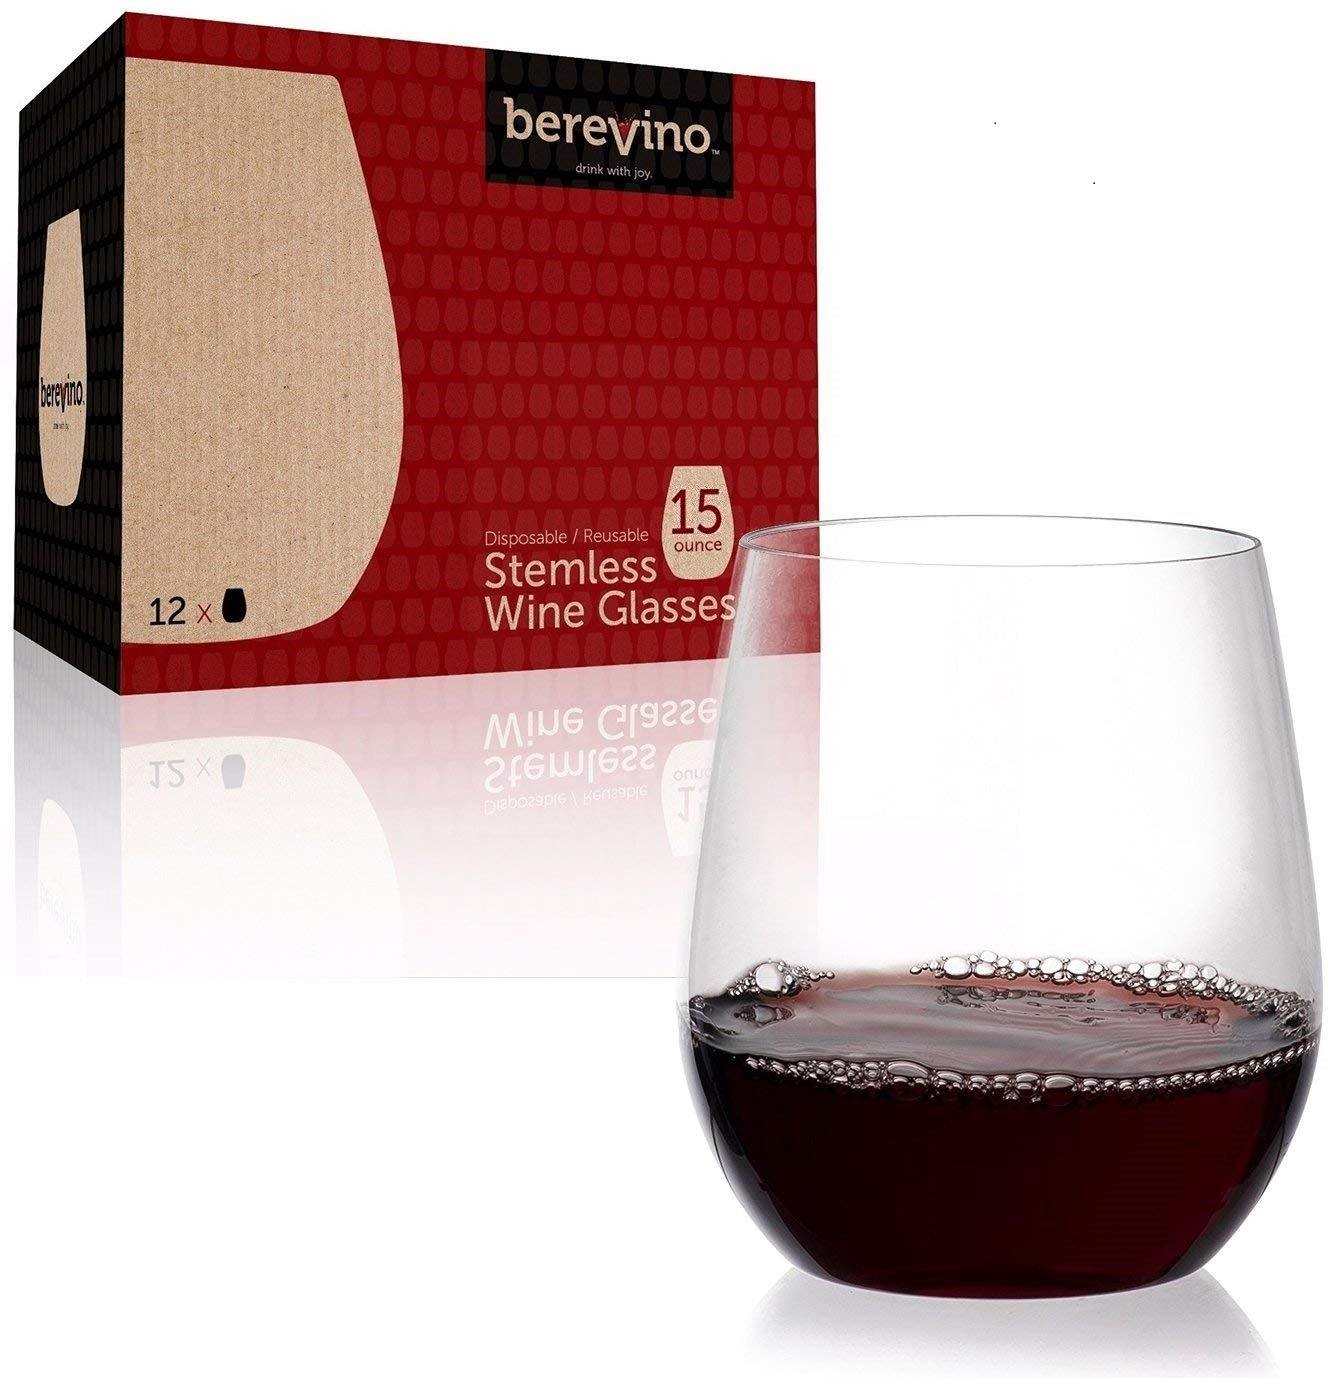 12 Stemless Plastic Wine Glasses - 15 oz. | Unbreakable Wine Glasses | Shatterproof Wine Glass | Plastic Drinking Glasses | Vino Wine Cups | Disposable Wine Glasses | Party Wine Glasses Set [Berevino]